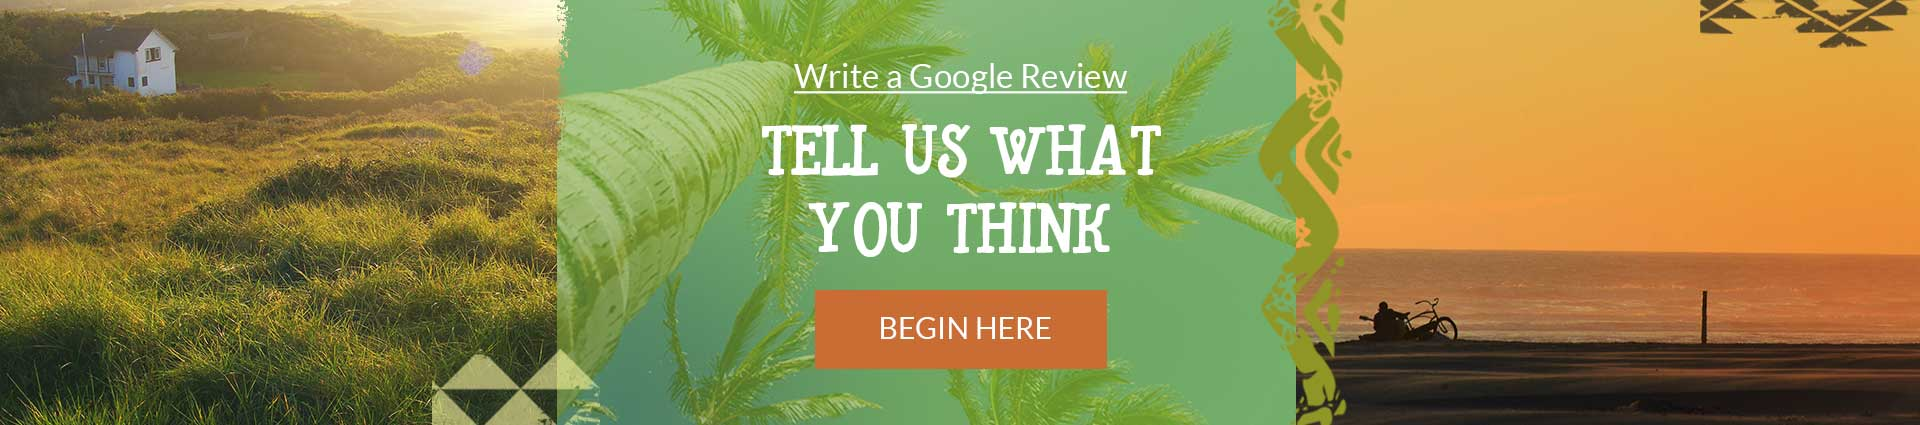 Write a review. Start by clicking here and add a Google Review for all to see.